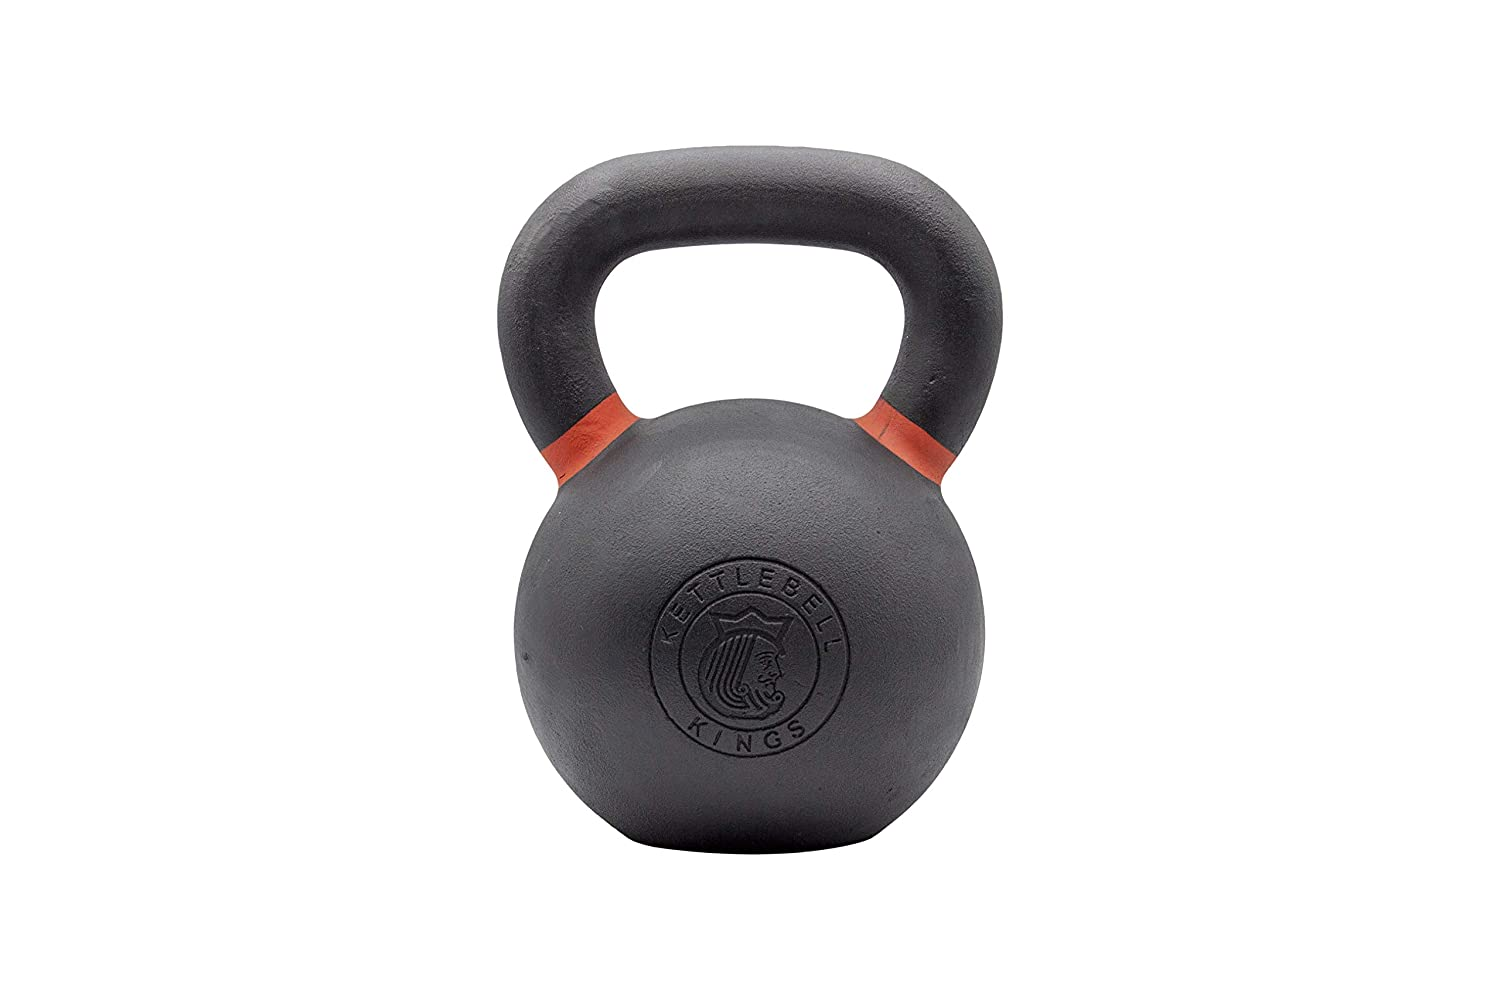 Kettlebell Kings Kettlebell Weights Kettlebell Set Powder Coat Kettlebells for Women Men Durable Coating for Grip Strength, Rust Prevention, Longevity American Style Kettlebell